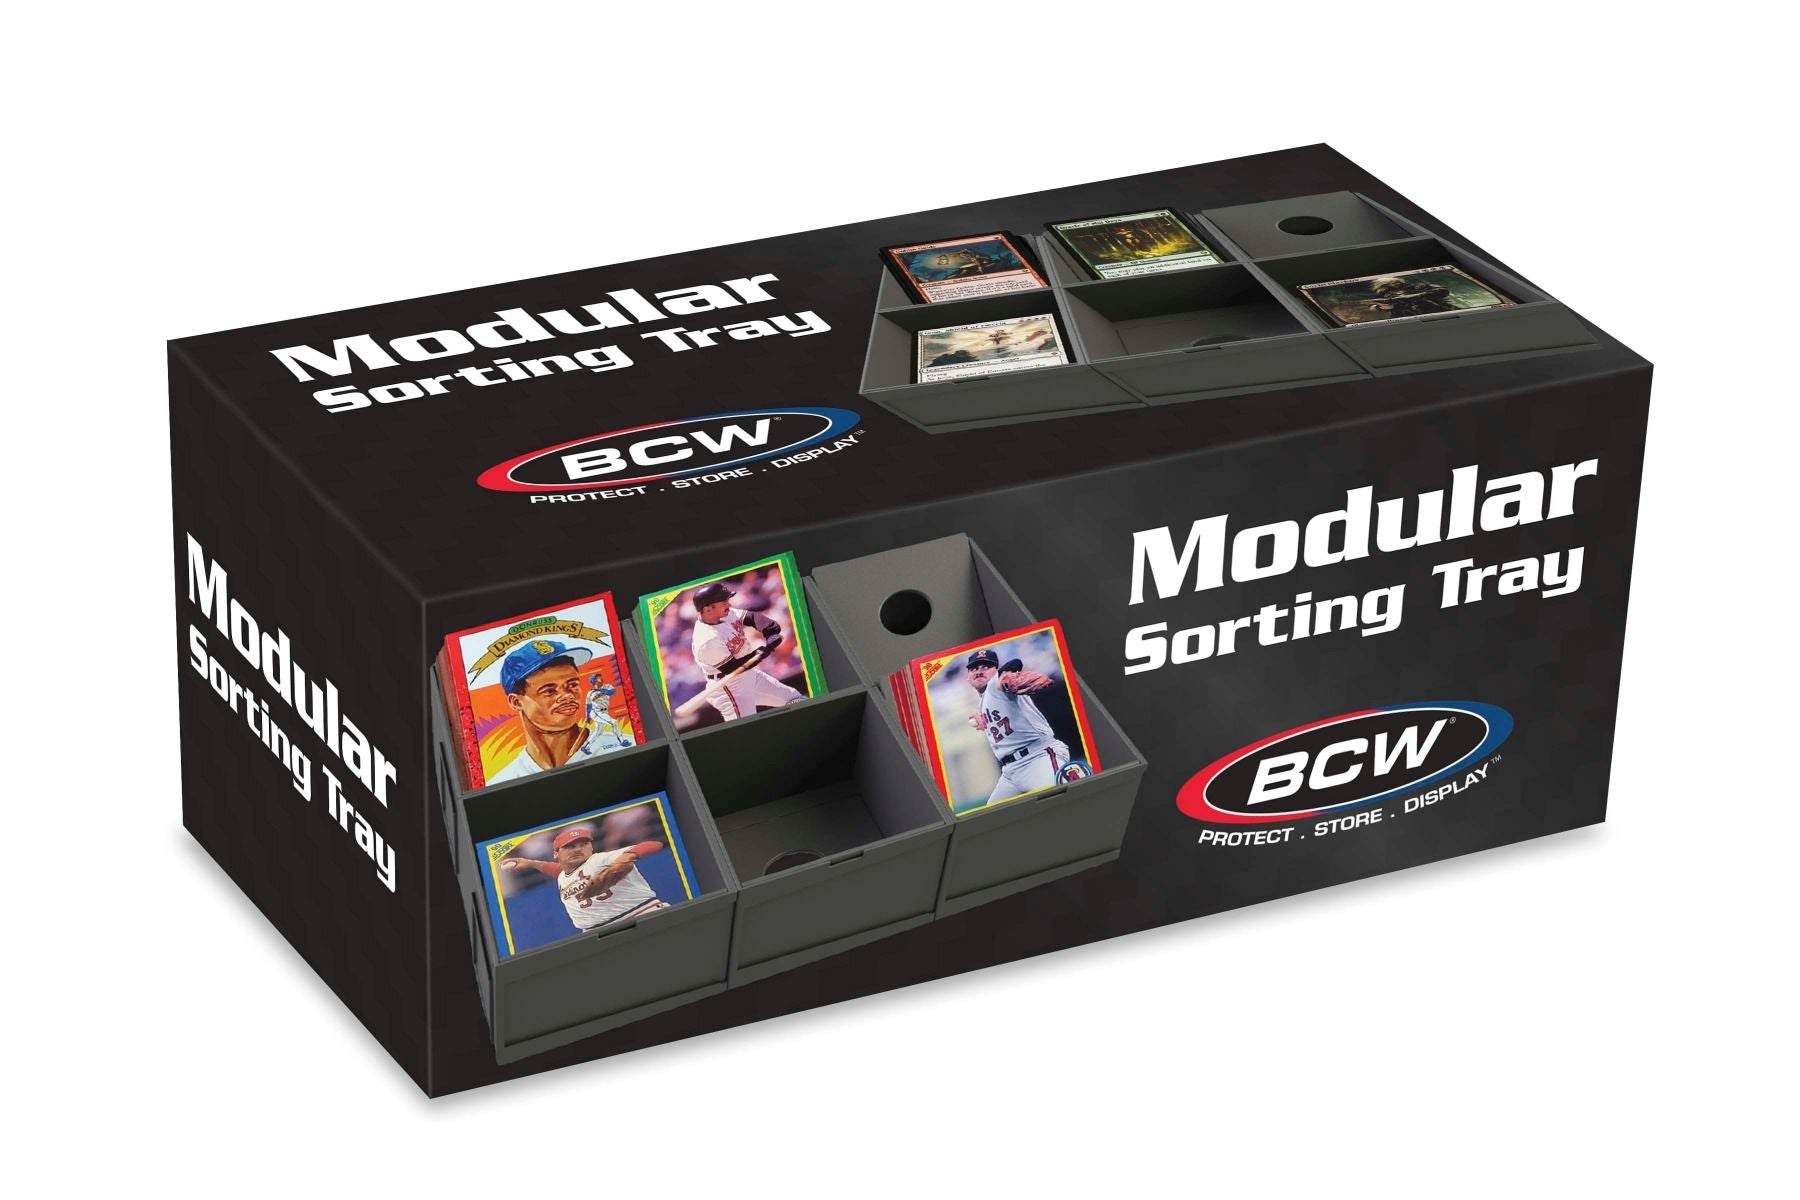 BCW: Modular Sorting Tray | Gamers Grove